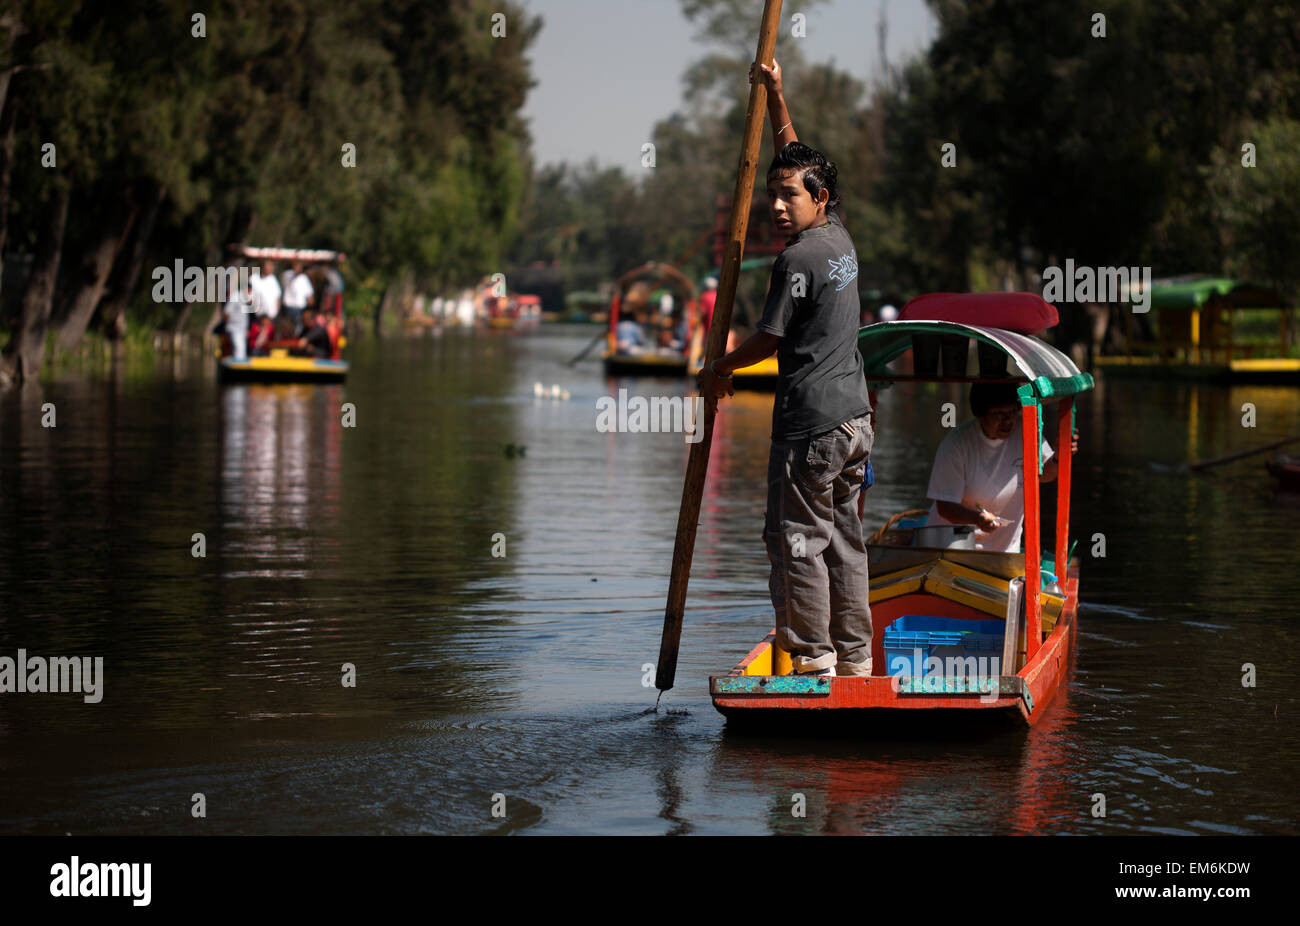 An boy uses a pole to navigate his boat through a canal in Xochimilco on the south side of Mexico City - Stock Image